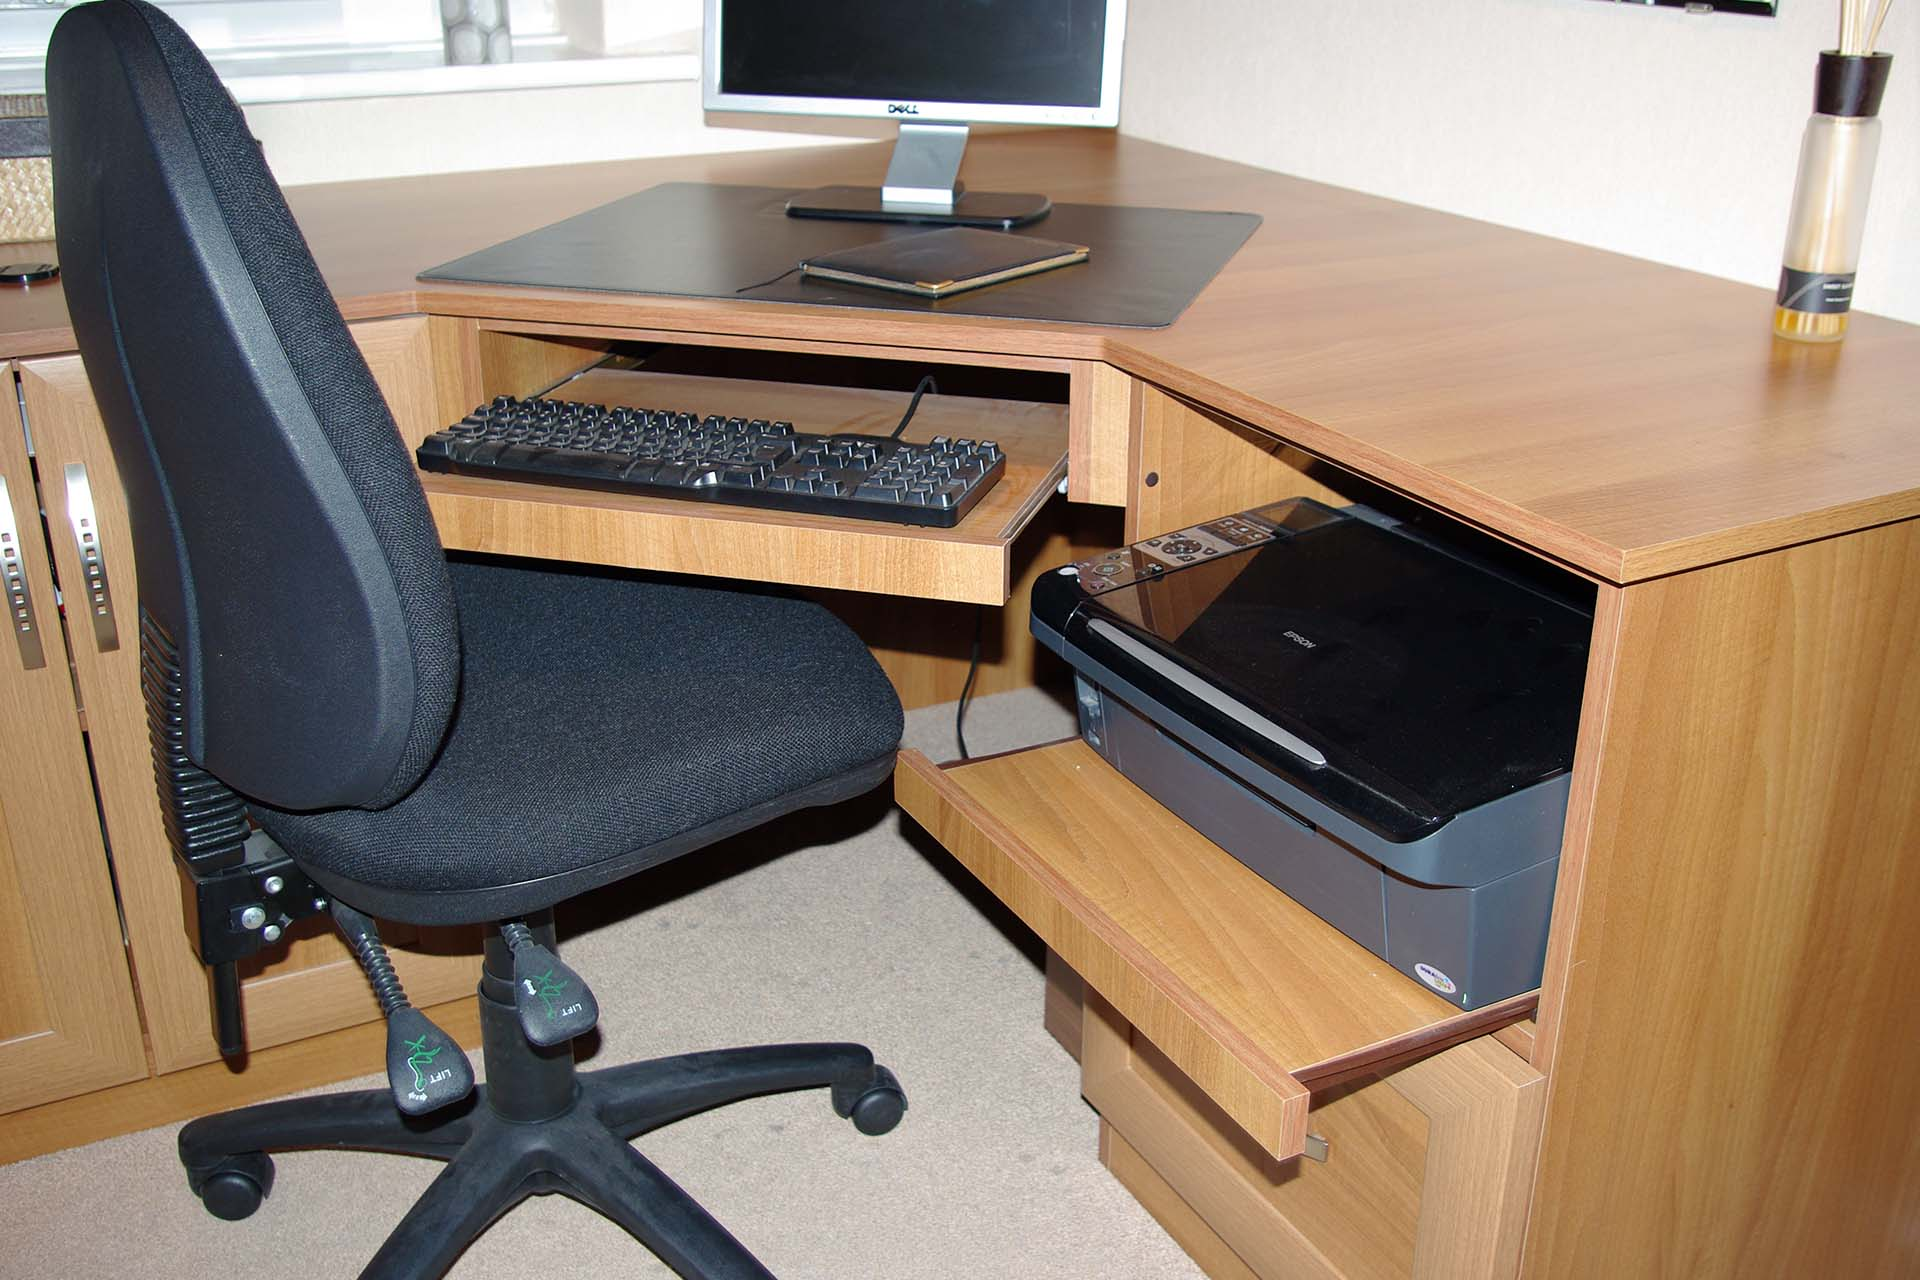 Home office corner desk made to measure office furniture - Home office corner desk furniture ...